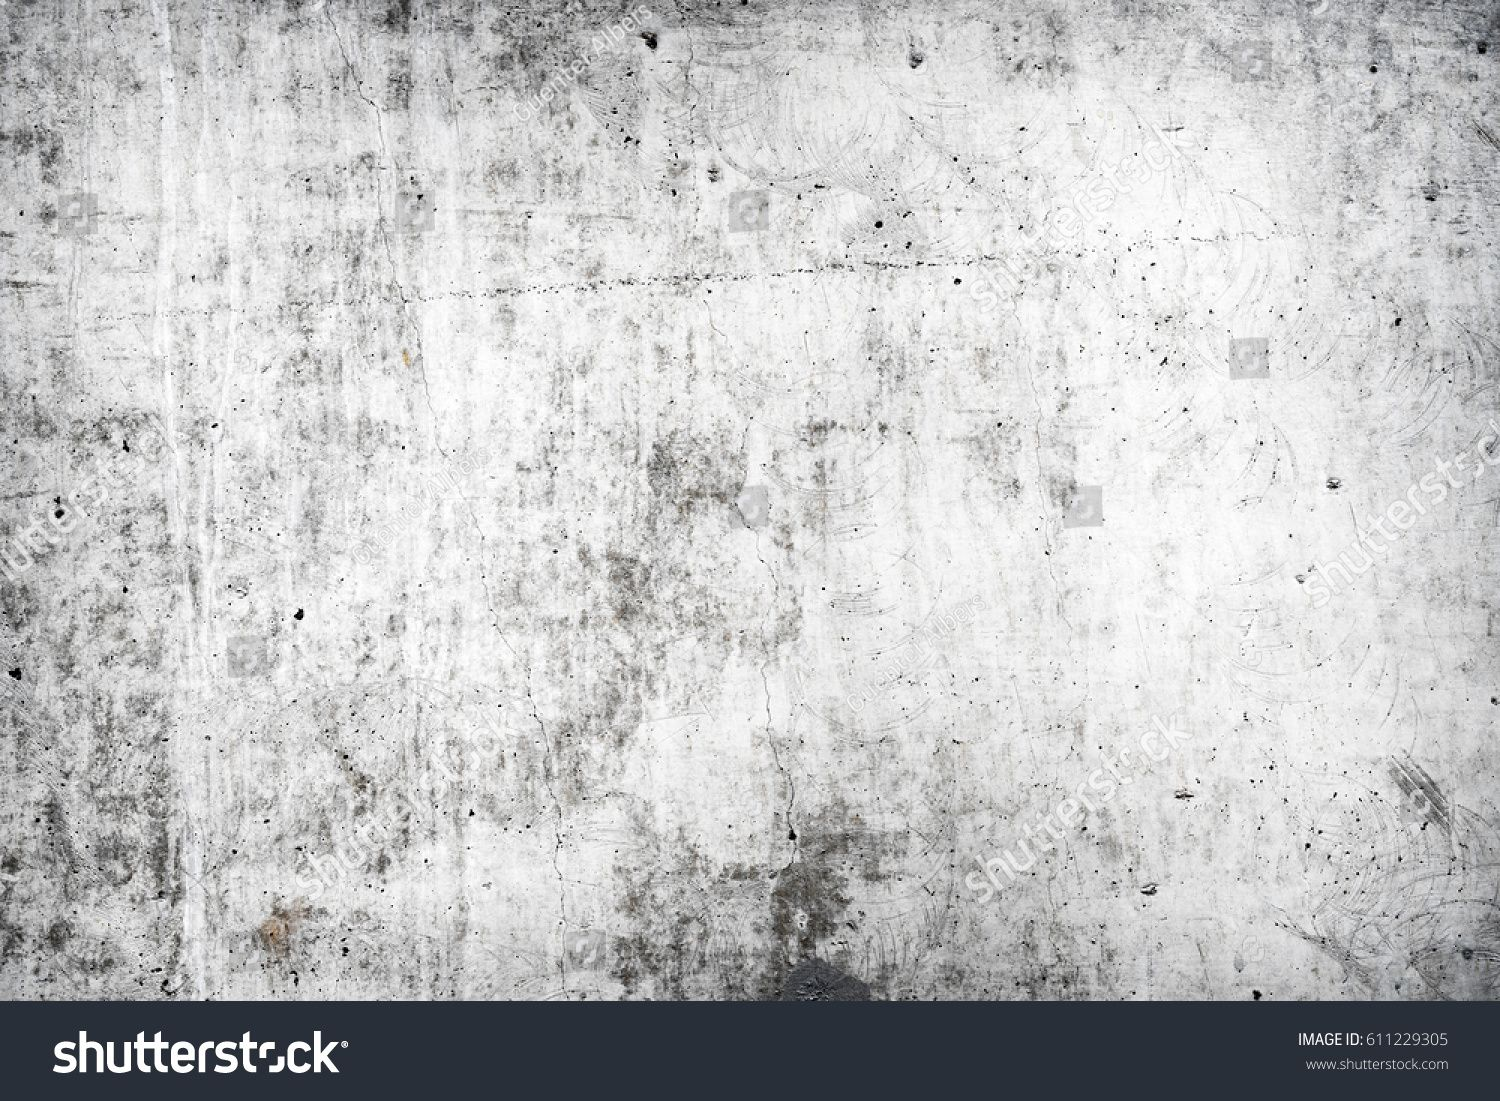 Texture Of Old White Concrete Wall For Background Sponsored Ad White Texture Concrete Background Concrete Background White Concrete Concrete Wall